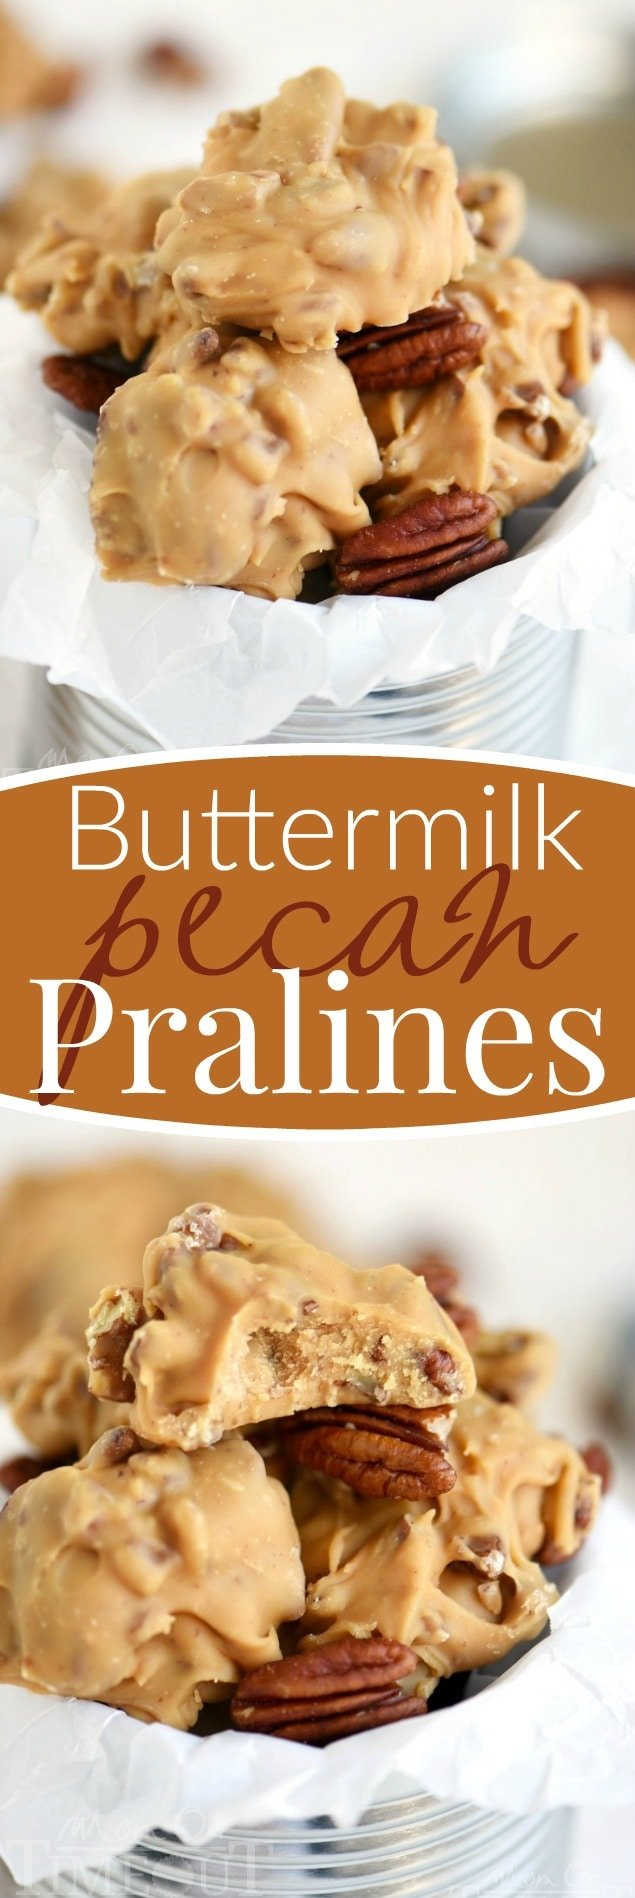 buttermilk-pecan-pralines-recipe-collage